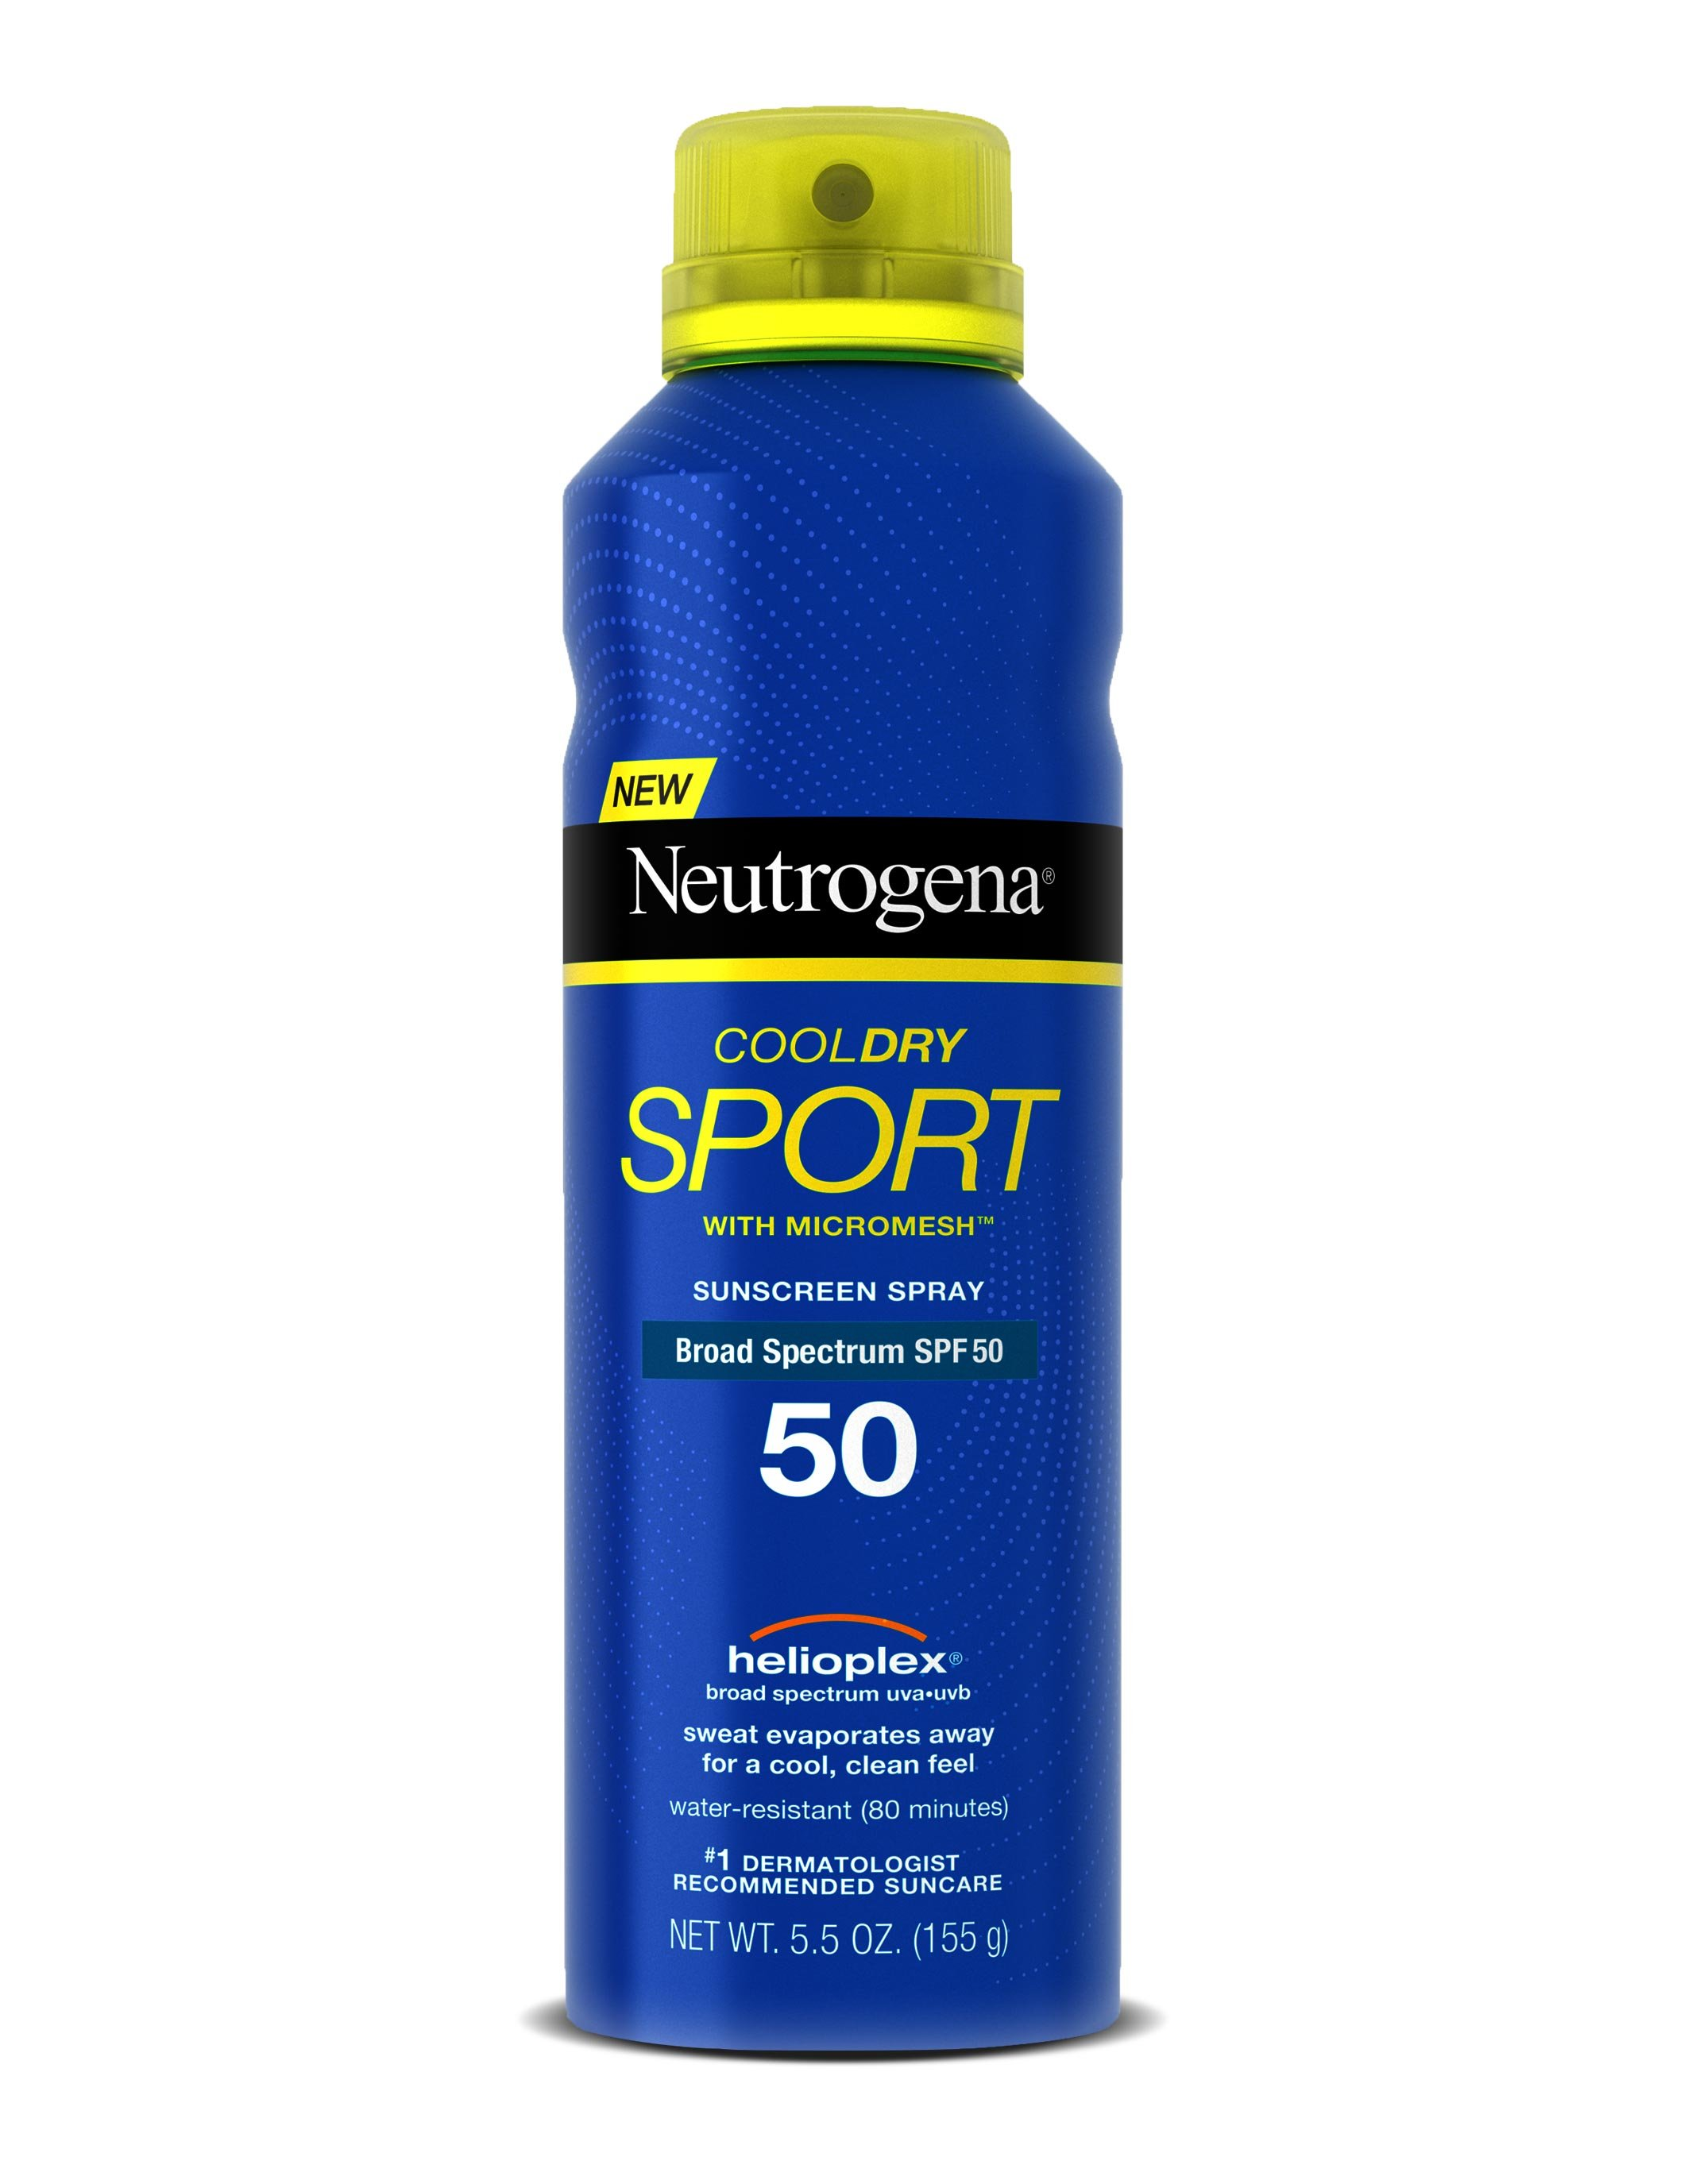 Neutrogena® Cool Dry Sport Sunscreen Spray SPF 50 155g